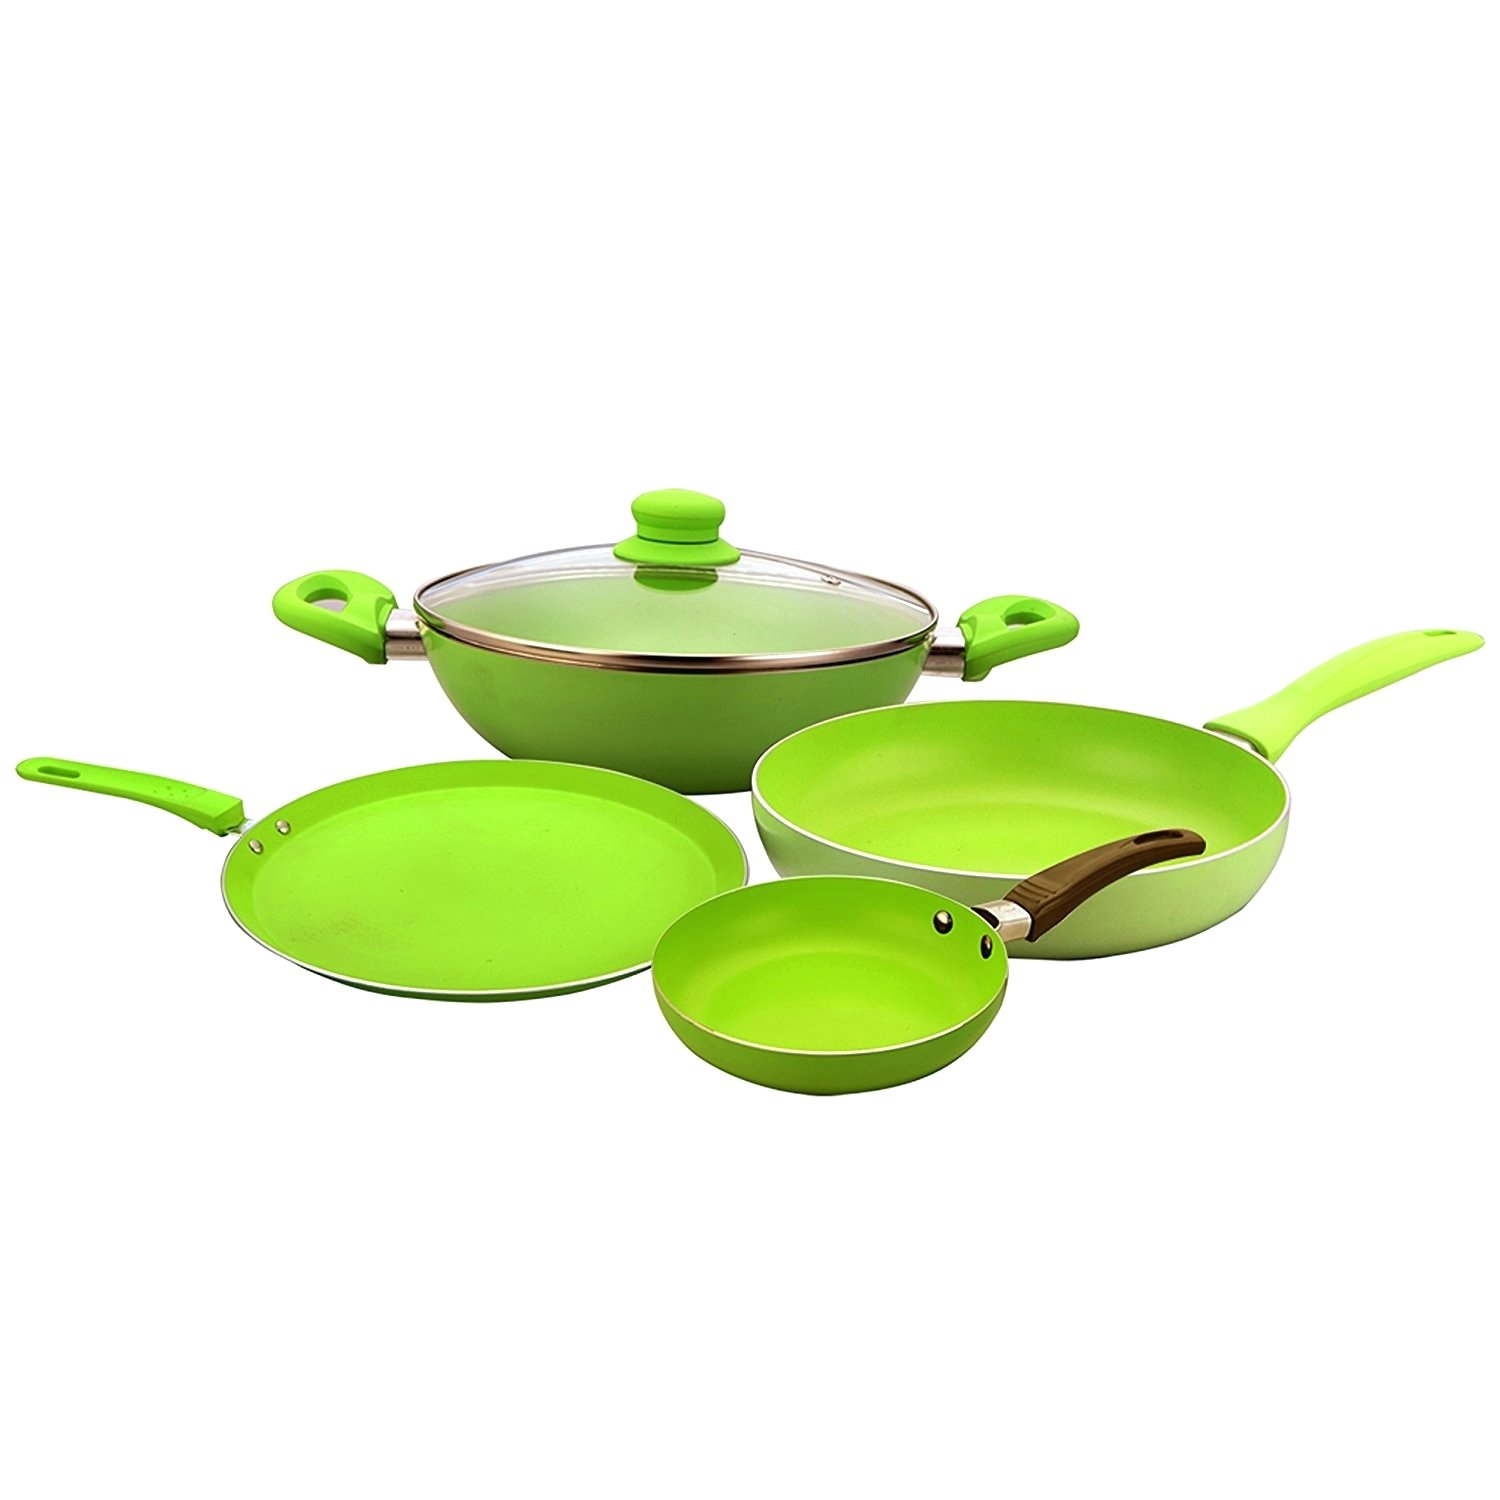 1500x1500 Green Life Fry Pans 12 Green Earth Frying Pan By Ozeri Green Life